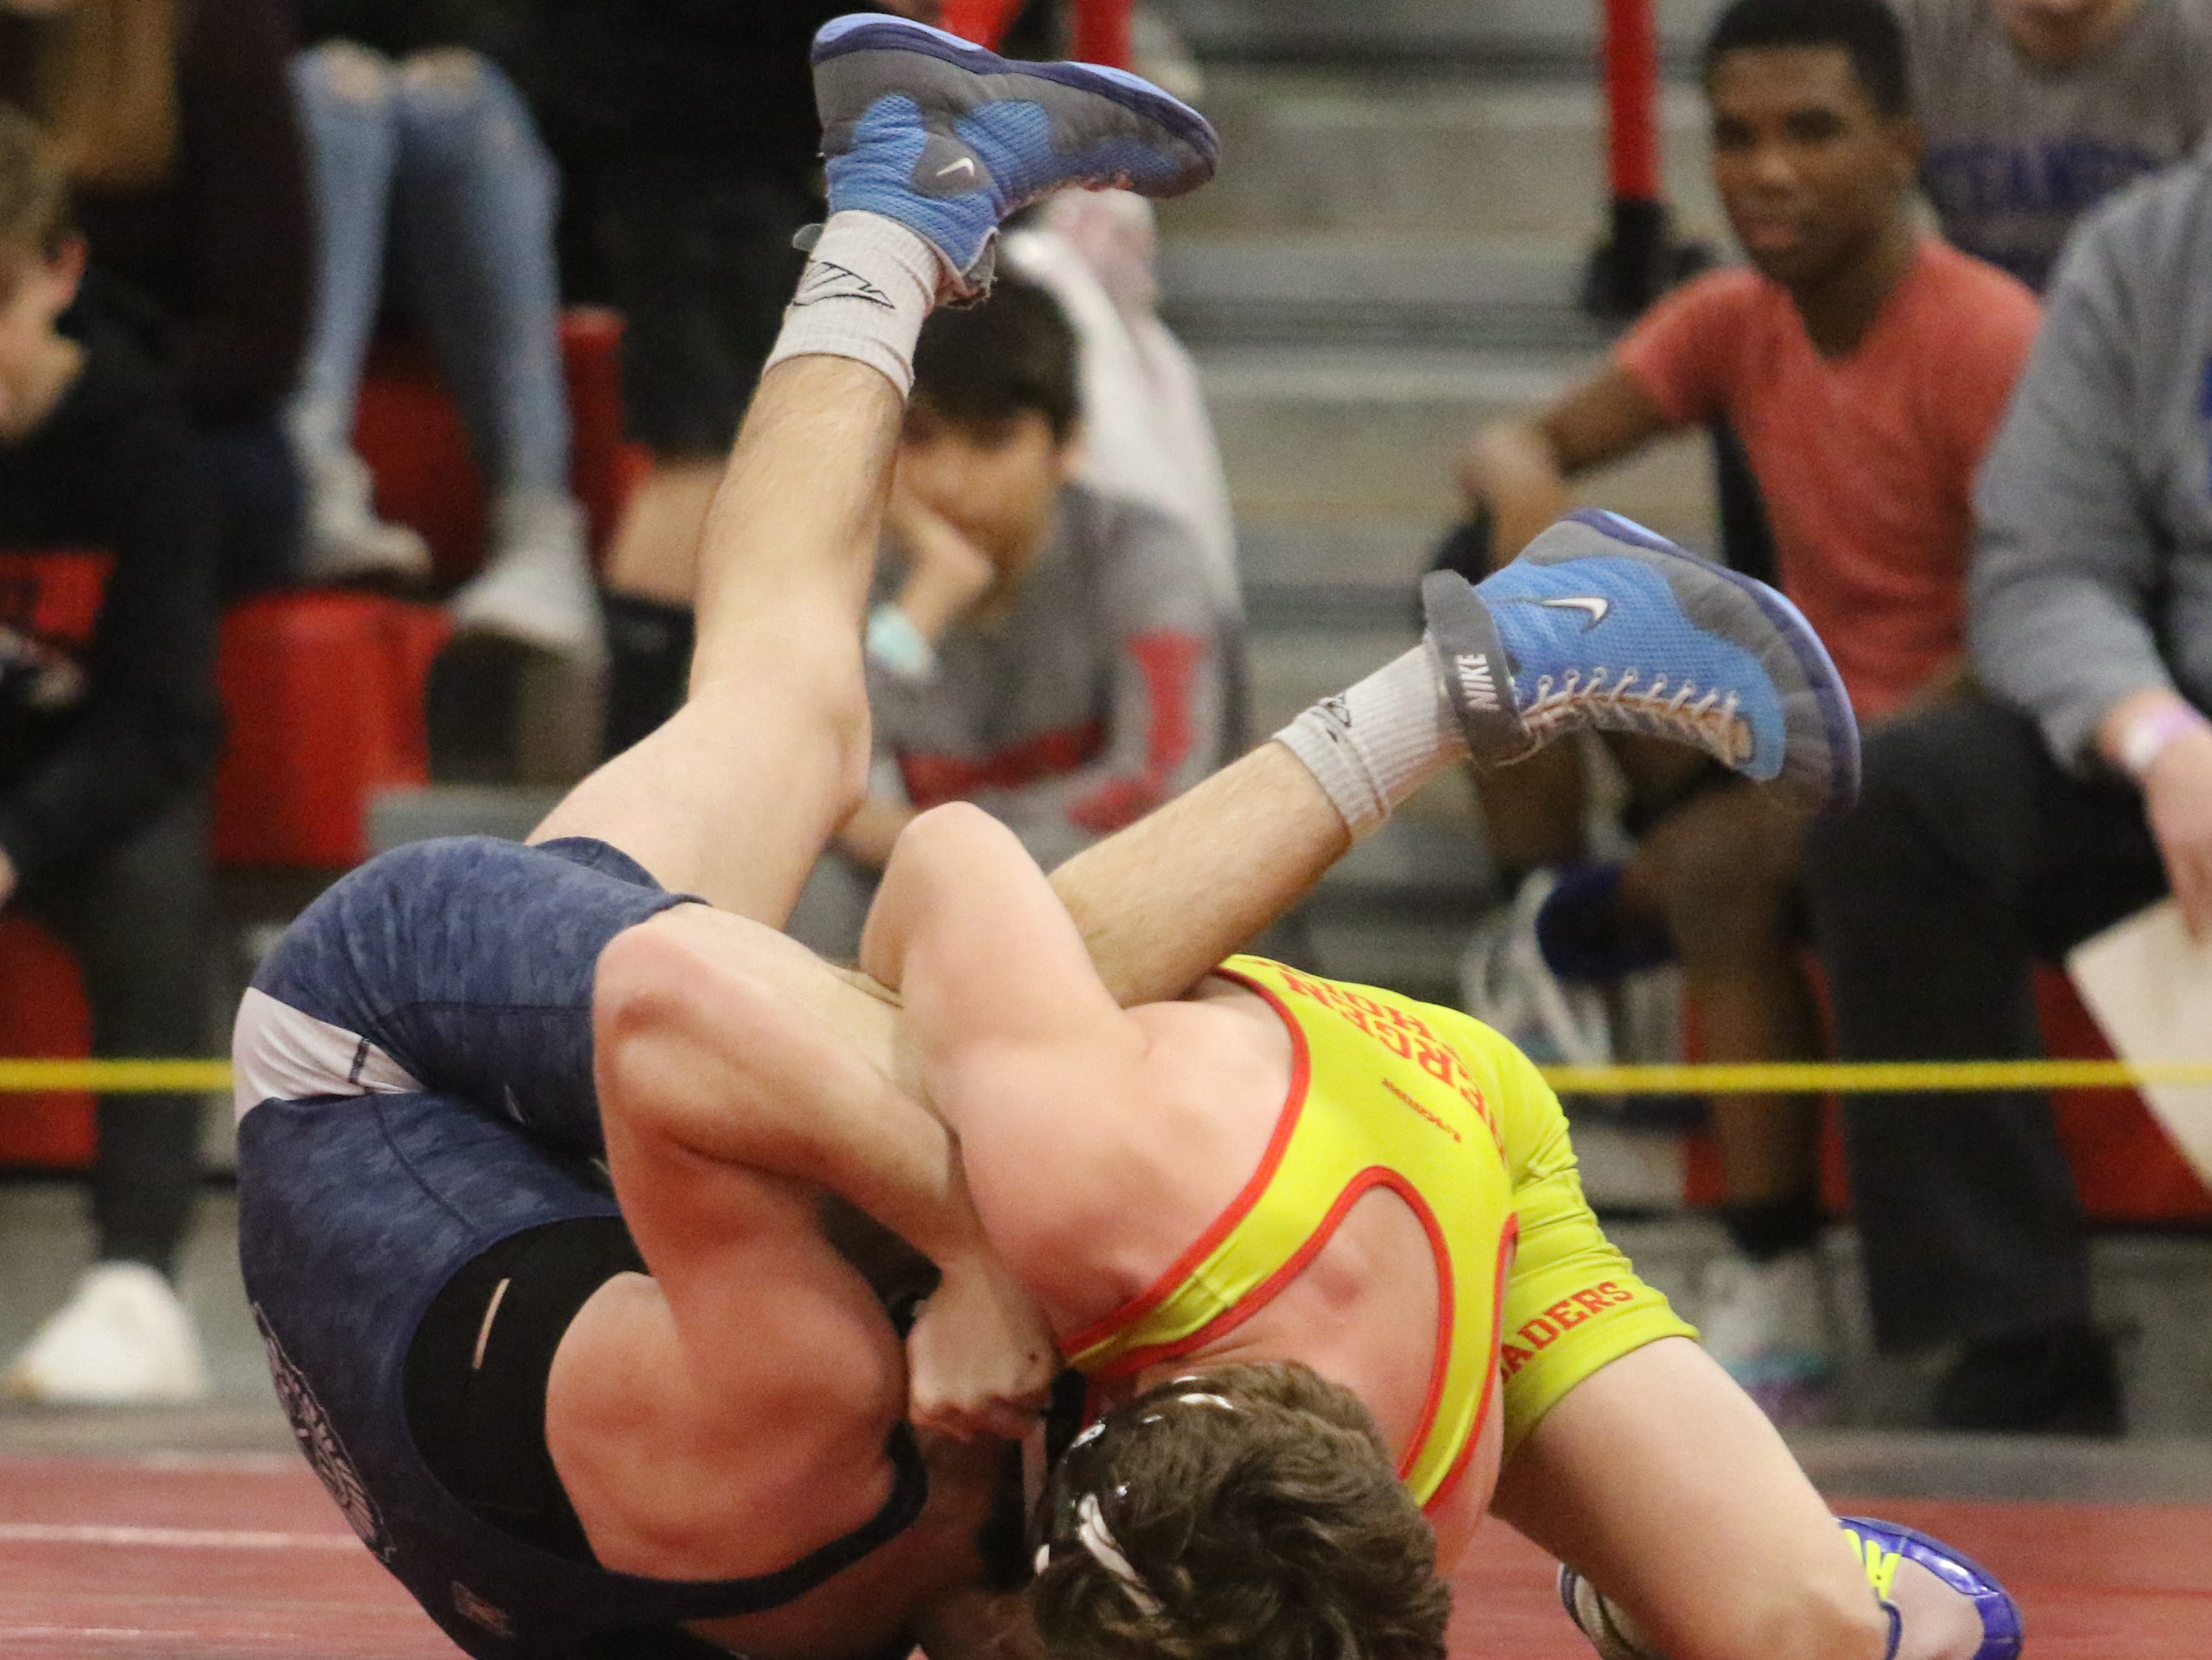 Robert Howard of Bergen Catholic wins over Ryan Hammer of Wayne Valley in the 126 lb. semi final match at the Region 2 wrestling tournament at Mt. Olive HS on February 23, 2019.